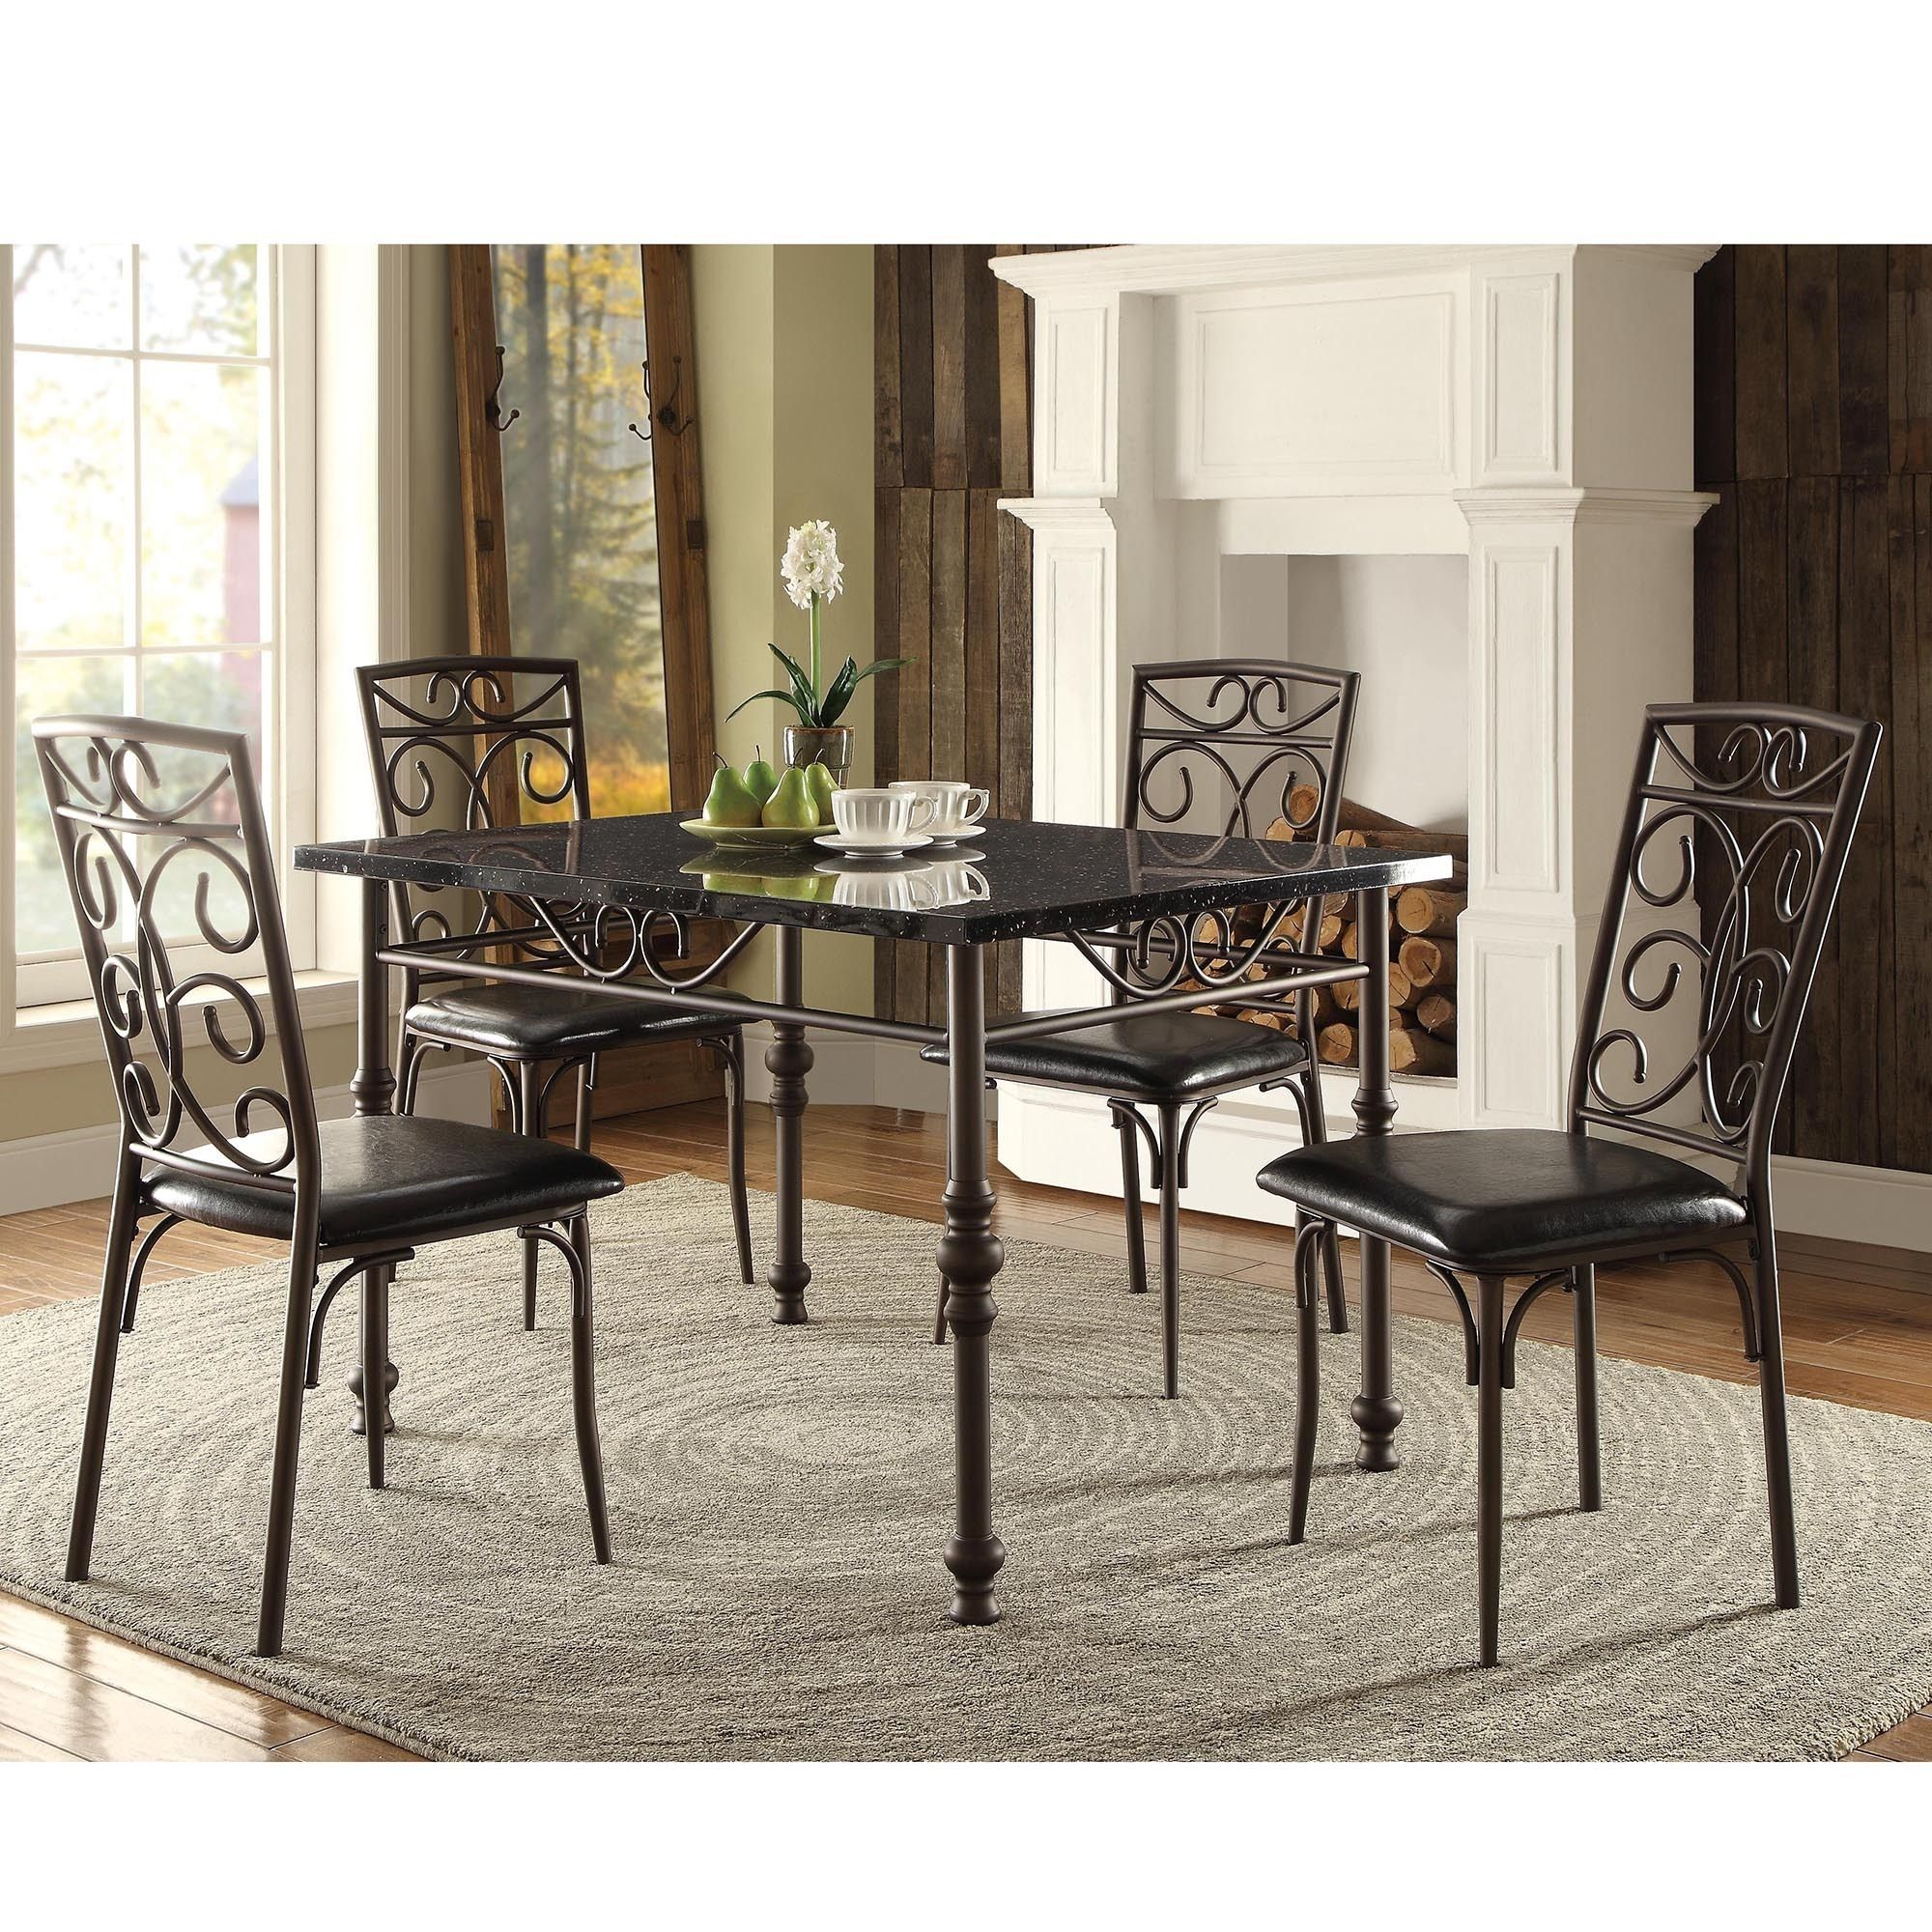 Zella Bistro Faux Marble Top Metal Scroll 5-piece Dining Set by iNSPIRE Q  Classic by iNSPIRE Q